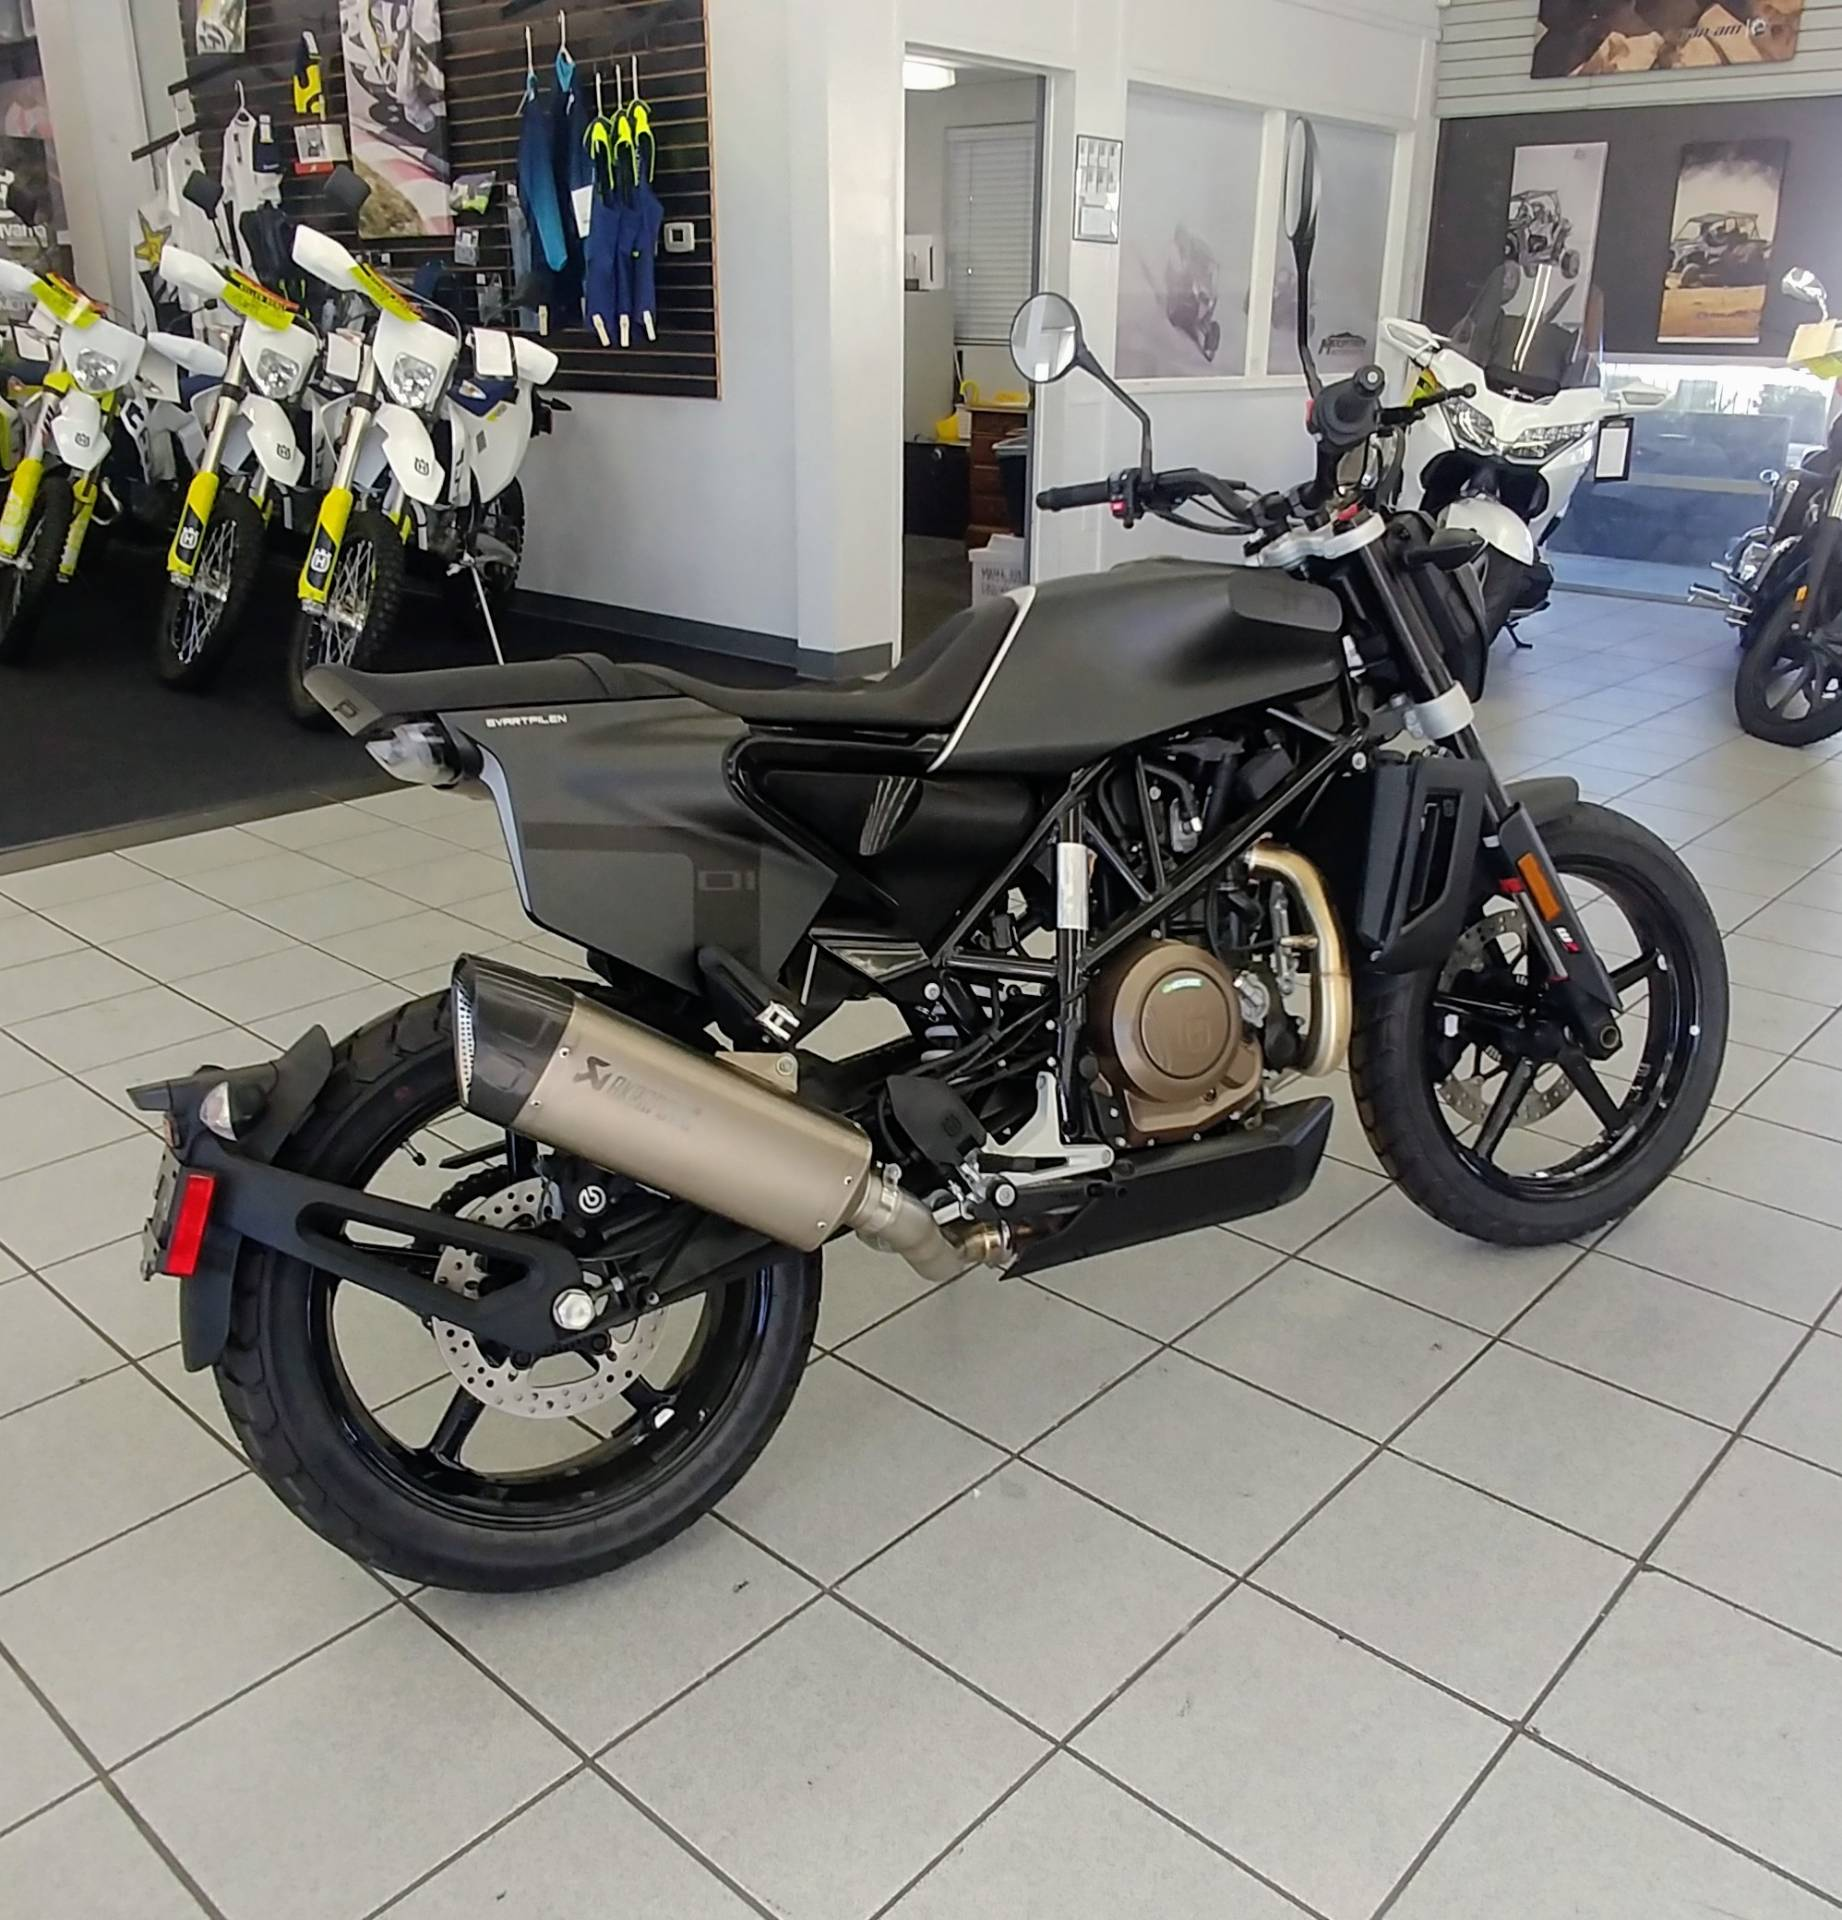 2019 Husqvarna Svartpilen 701 in Ontario, California - Photo 4